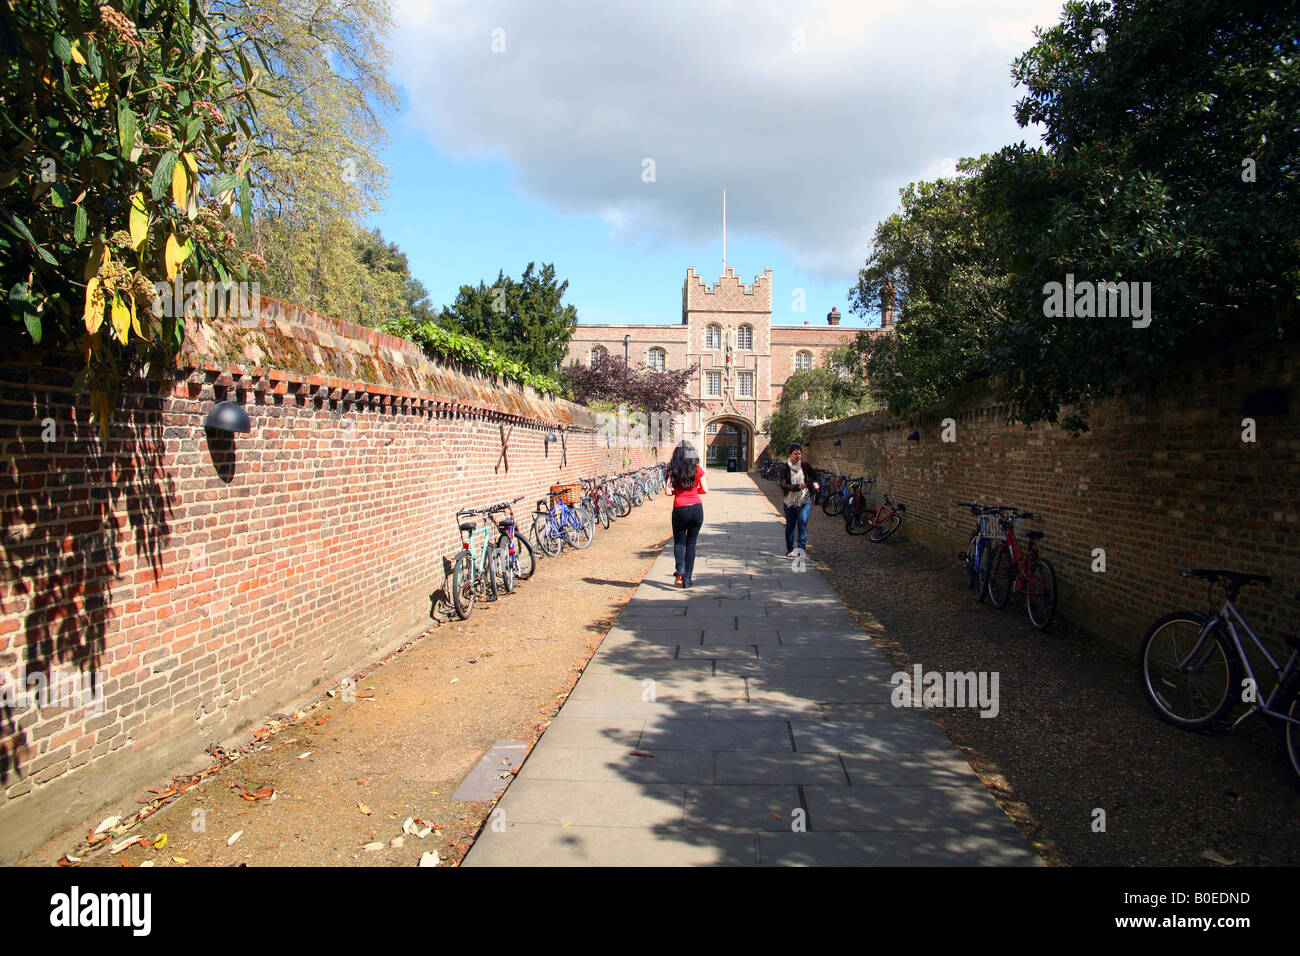 Main entrance to Jesus College Cambridge known as The Chimney - Stock Image